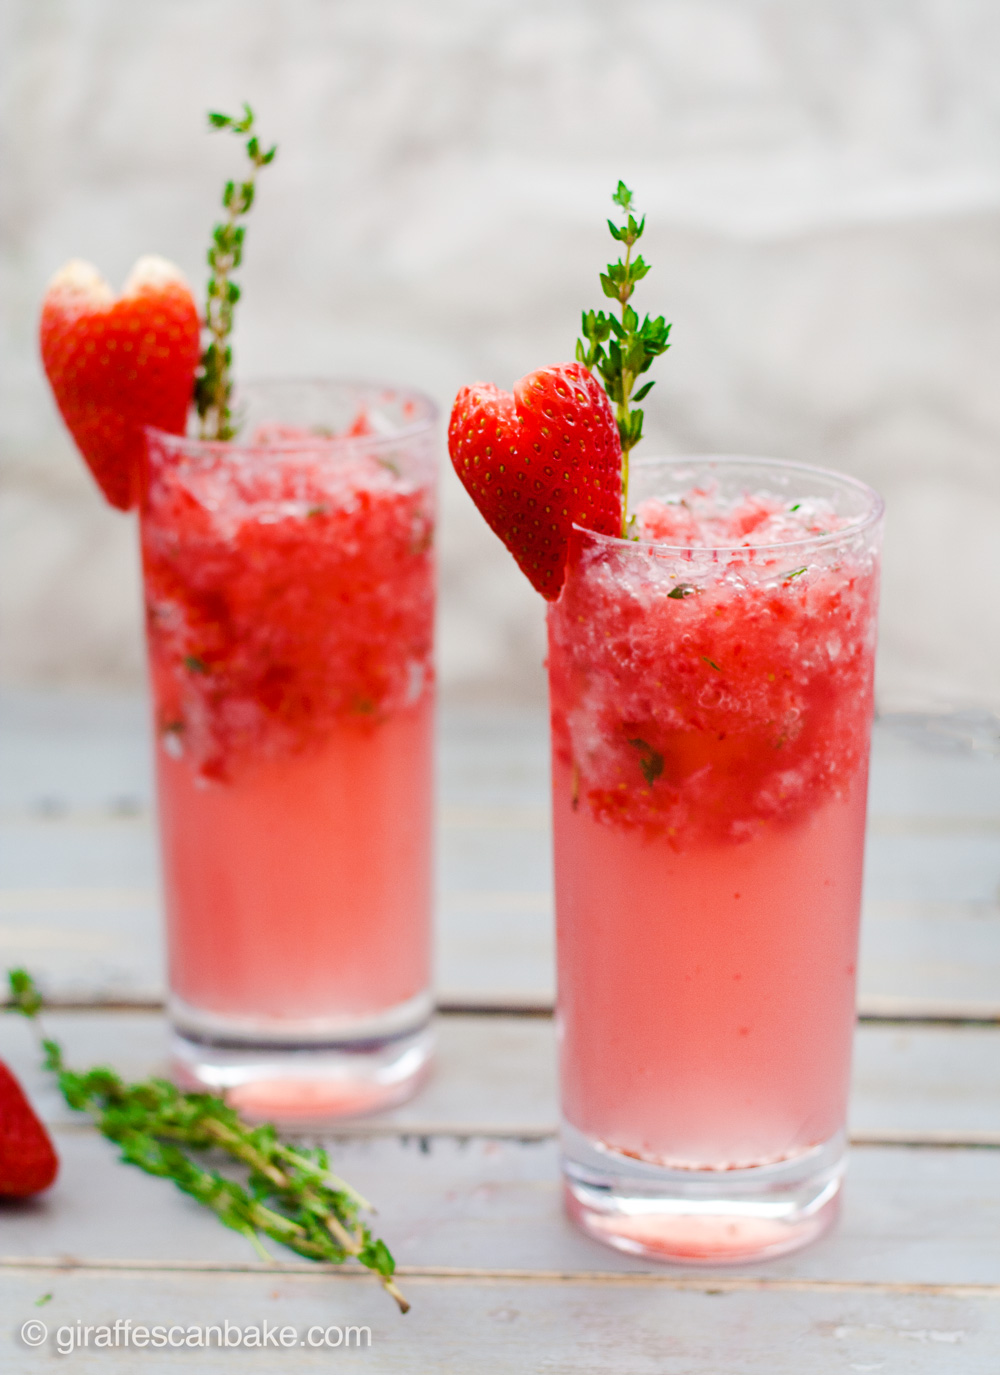 Strawberry & Thyme Slushie Cocktails - These Strawberry and Thyme Slushie Cocktails are not only gorgeous, they're totally delicious too. Sweet strawberries are muddled with aromatic thyme and white rum, add some crushed strawberry ice and soda water and you have the perfect Valentine's Day cocktail to share with your sweetheart.